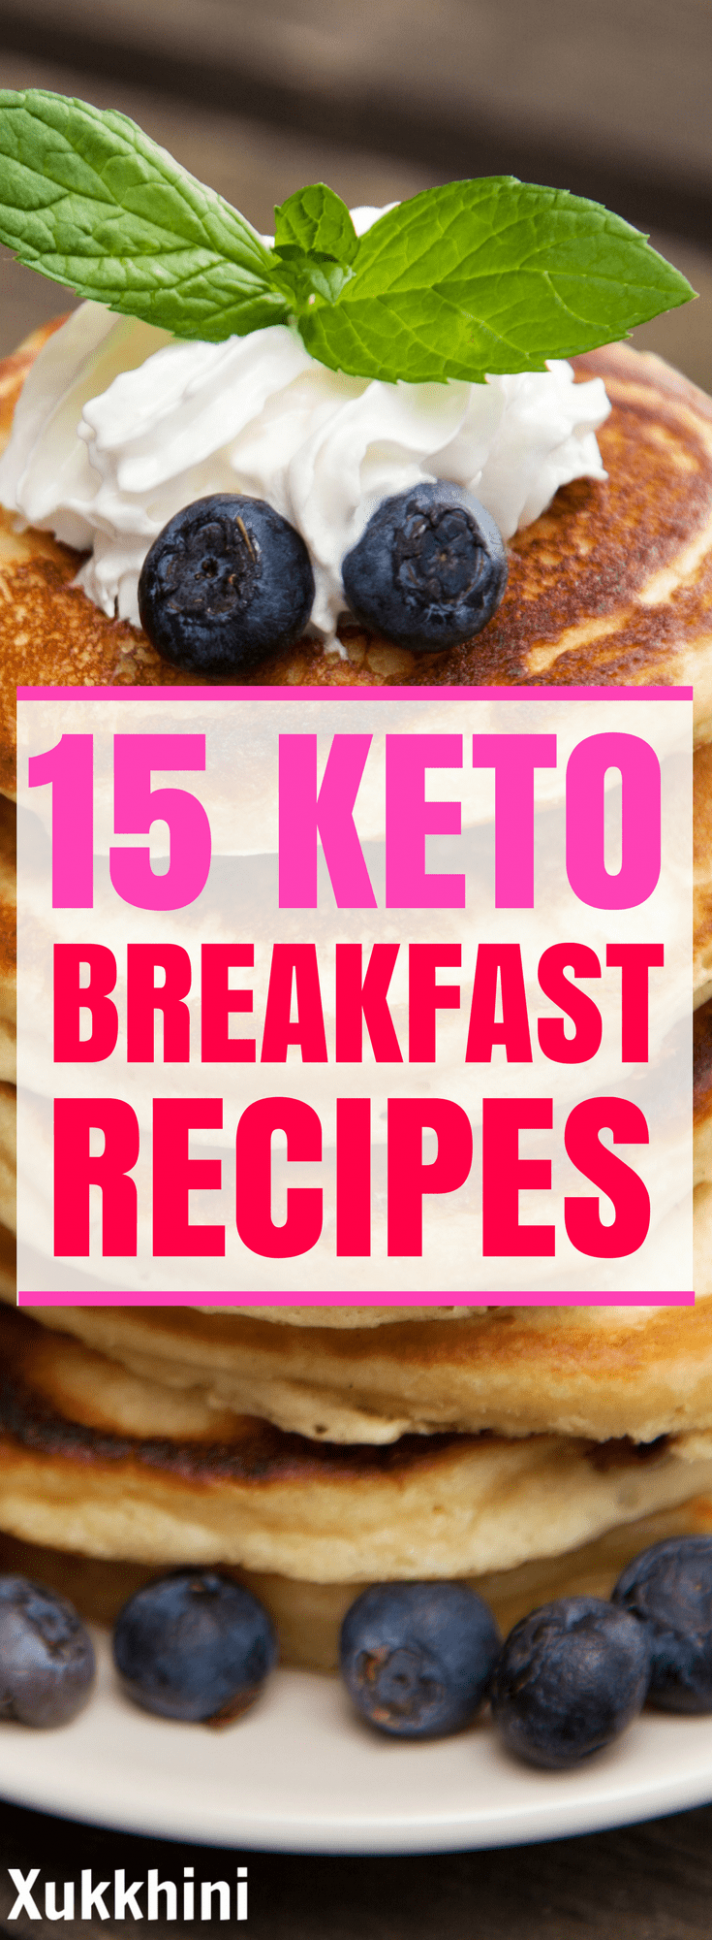 15 Keto Breakfast Recipes: Best Quick & Easy Low Carb ...